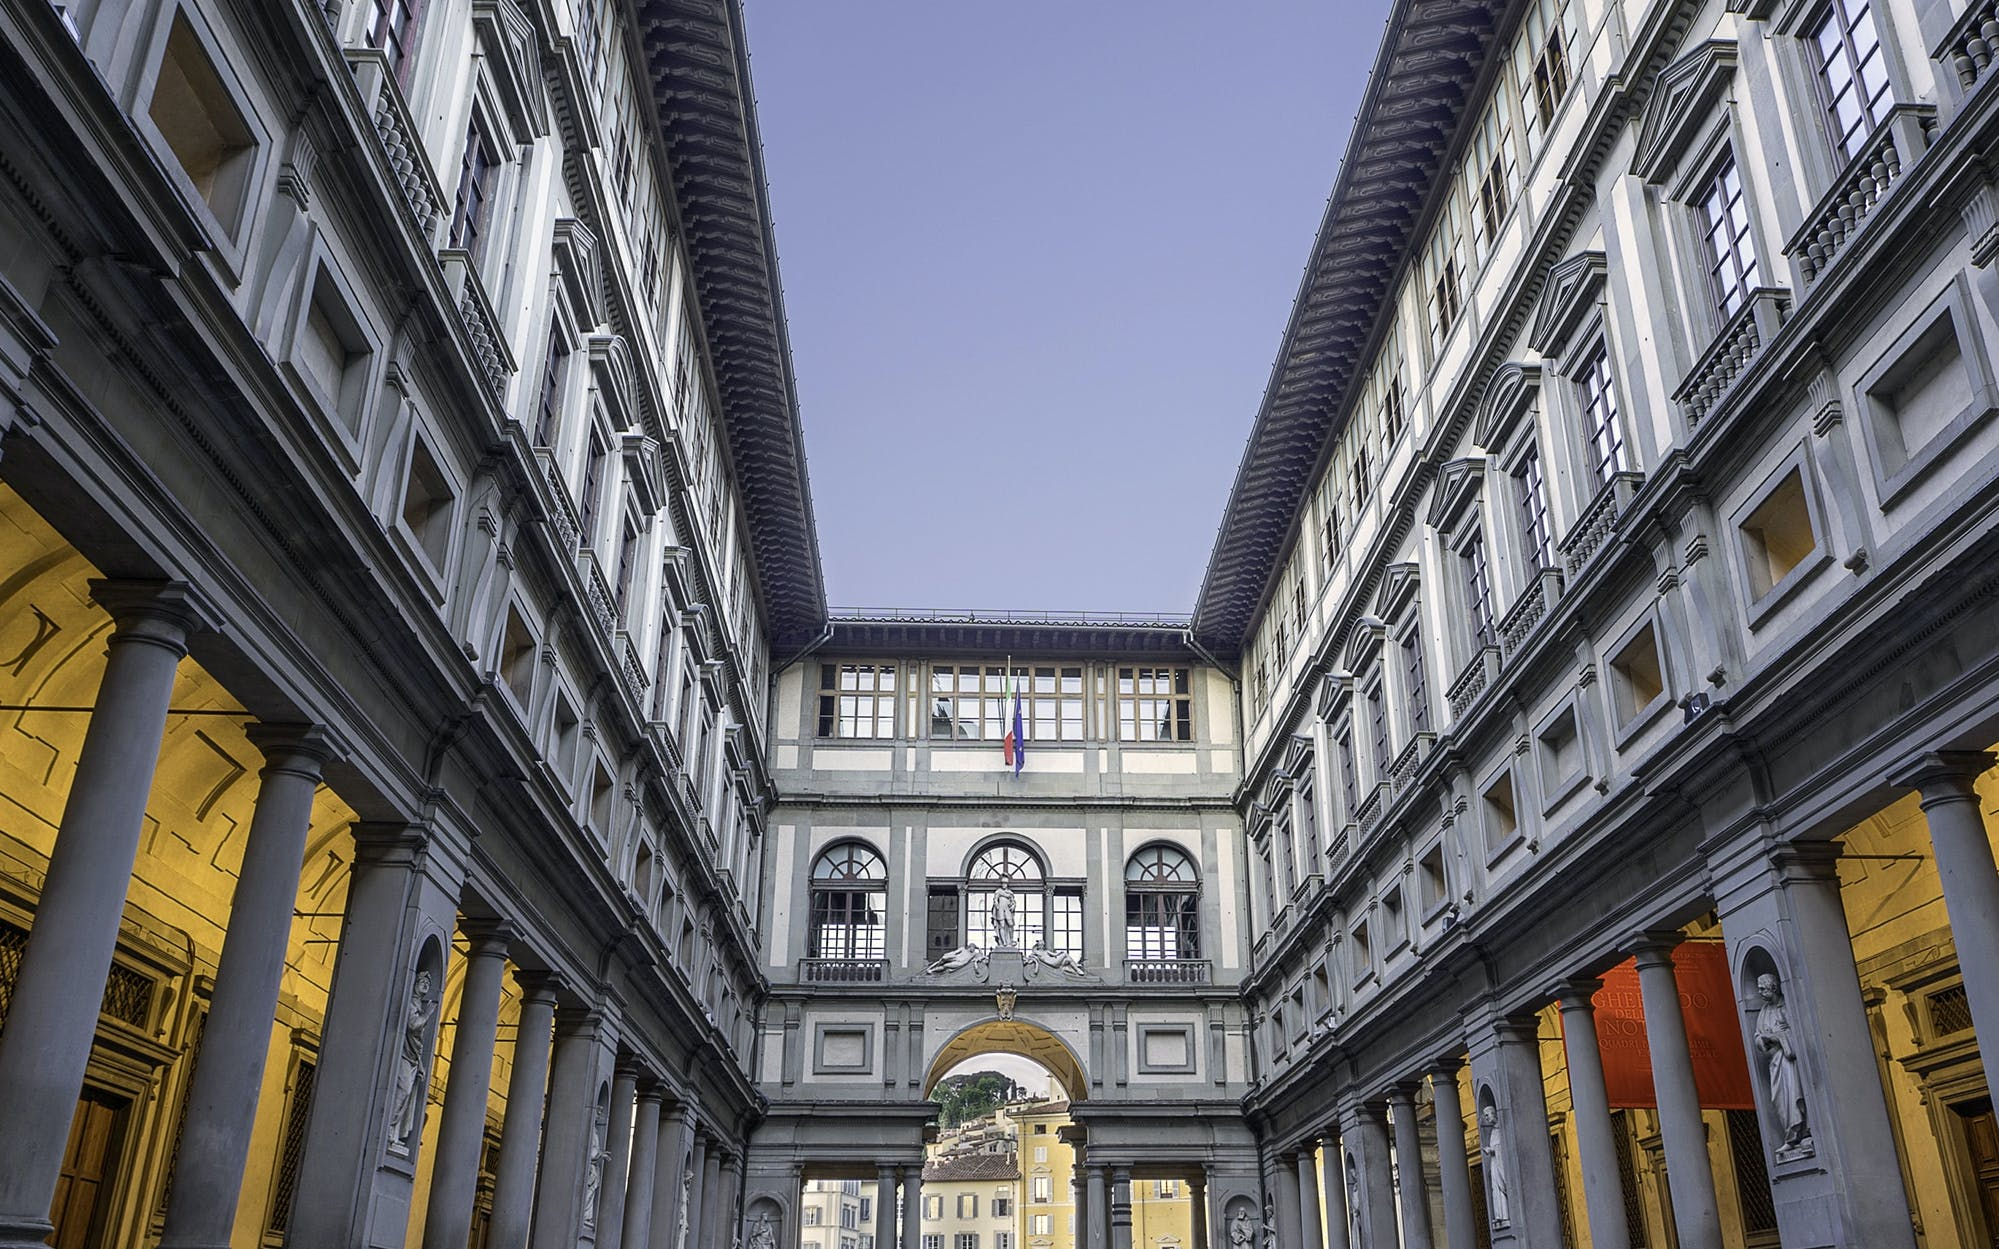 Skip The Line Guided Tour of Uffizi Gallery